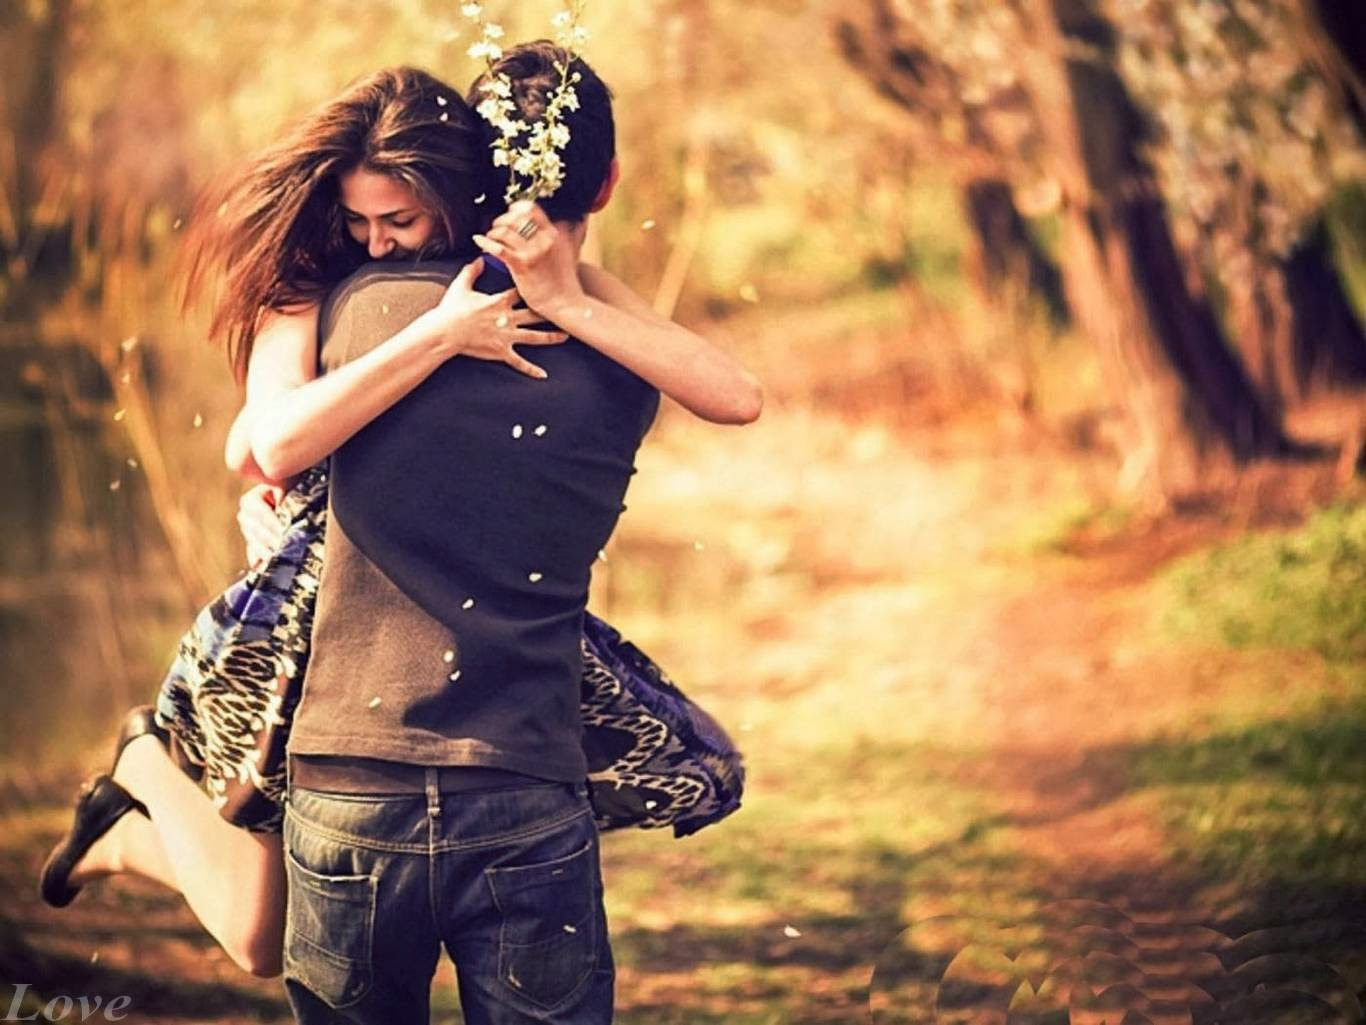 Download lovely couple wallpaper free download gallery - Couple wallpaper download ...